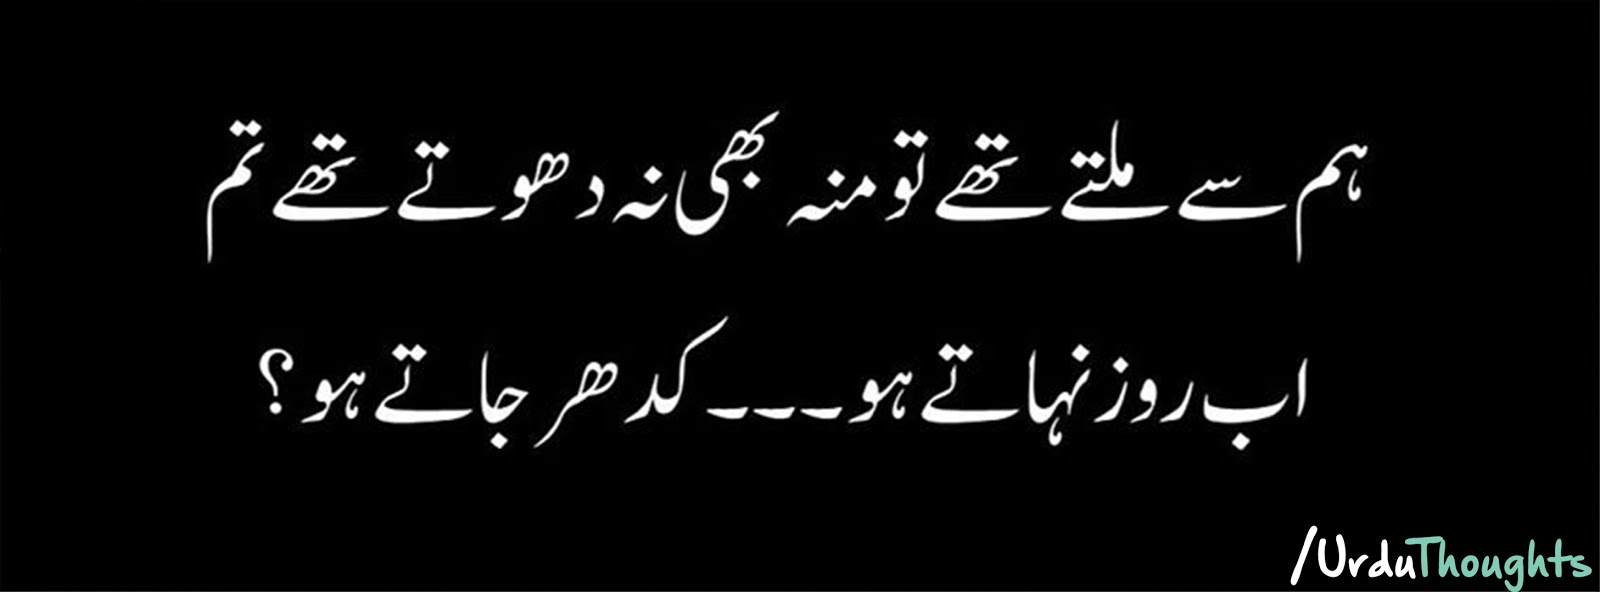 Facebook Cover Photos With Quotes Best Quotes In Urdu Language  Urdu Facebook Cover  Urdu Thoughts